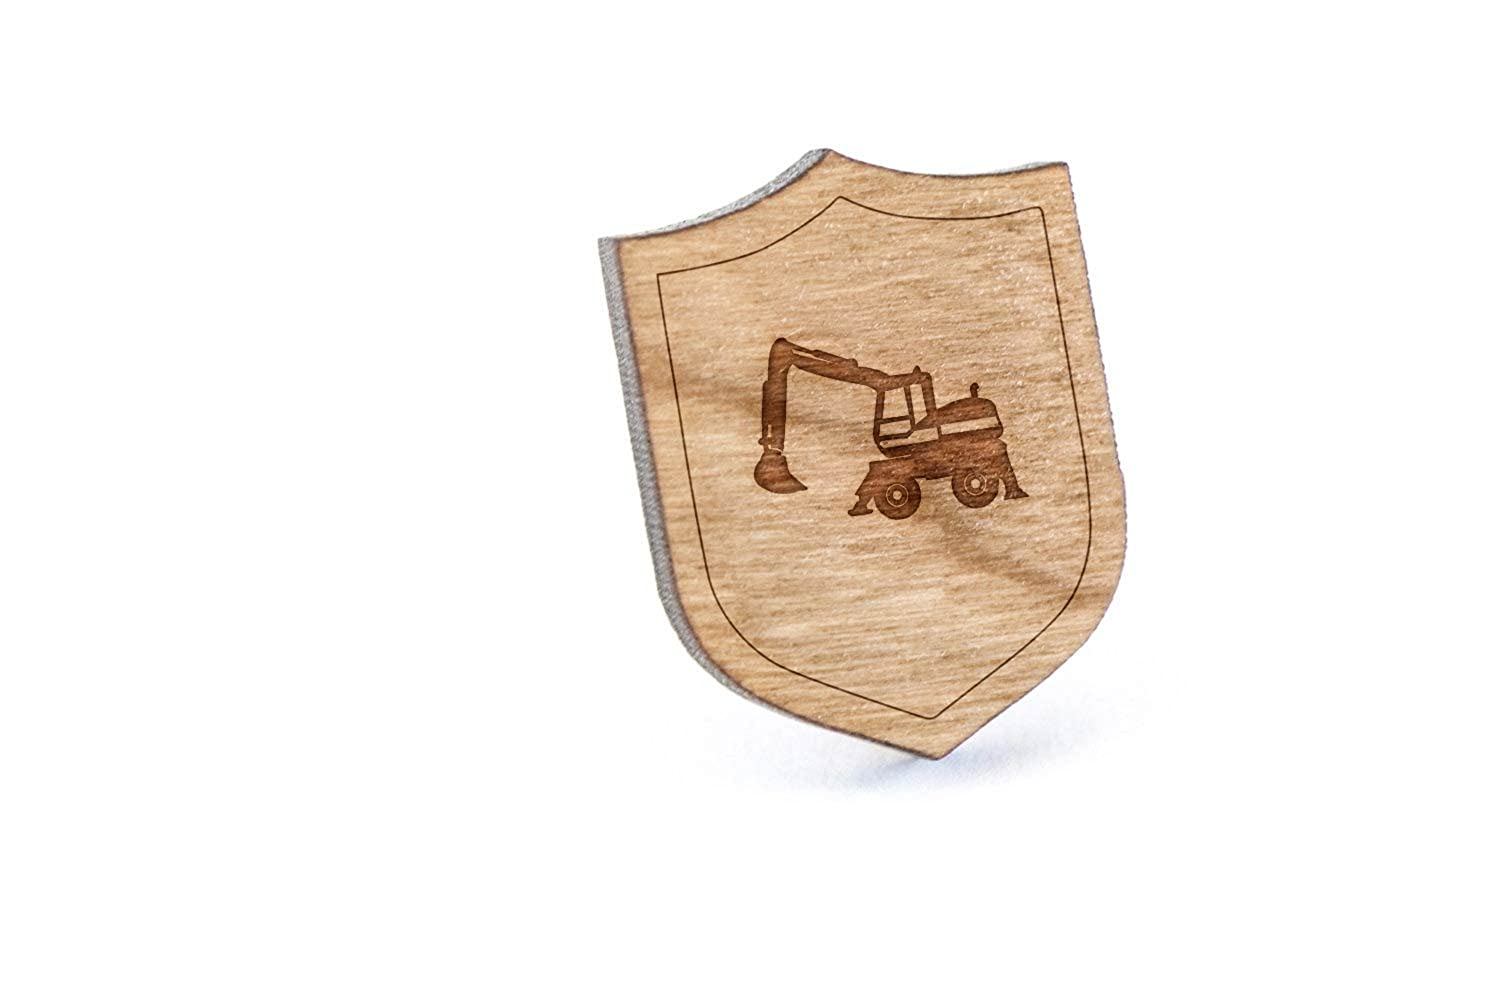 Excavator Lapel Pin, Wooden Pin And Tie Tack   Rustic And Minimalistic Groomsmen Gifts And Wedding Accessories